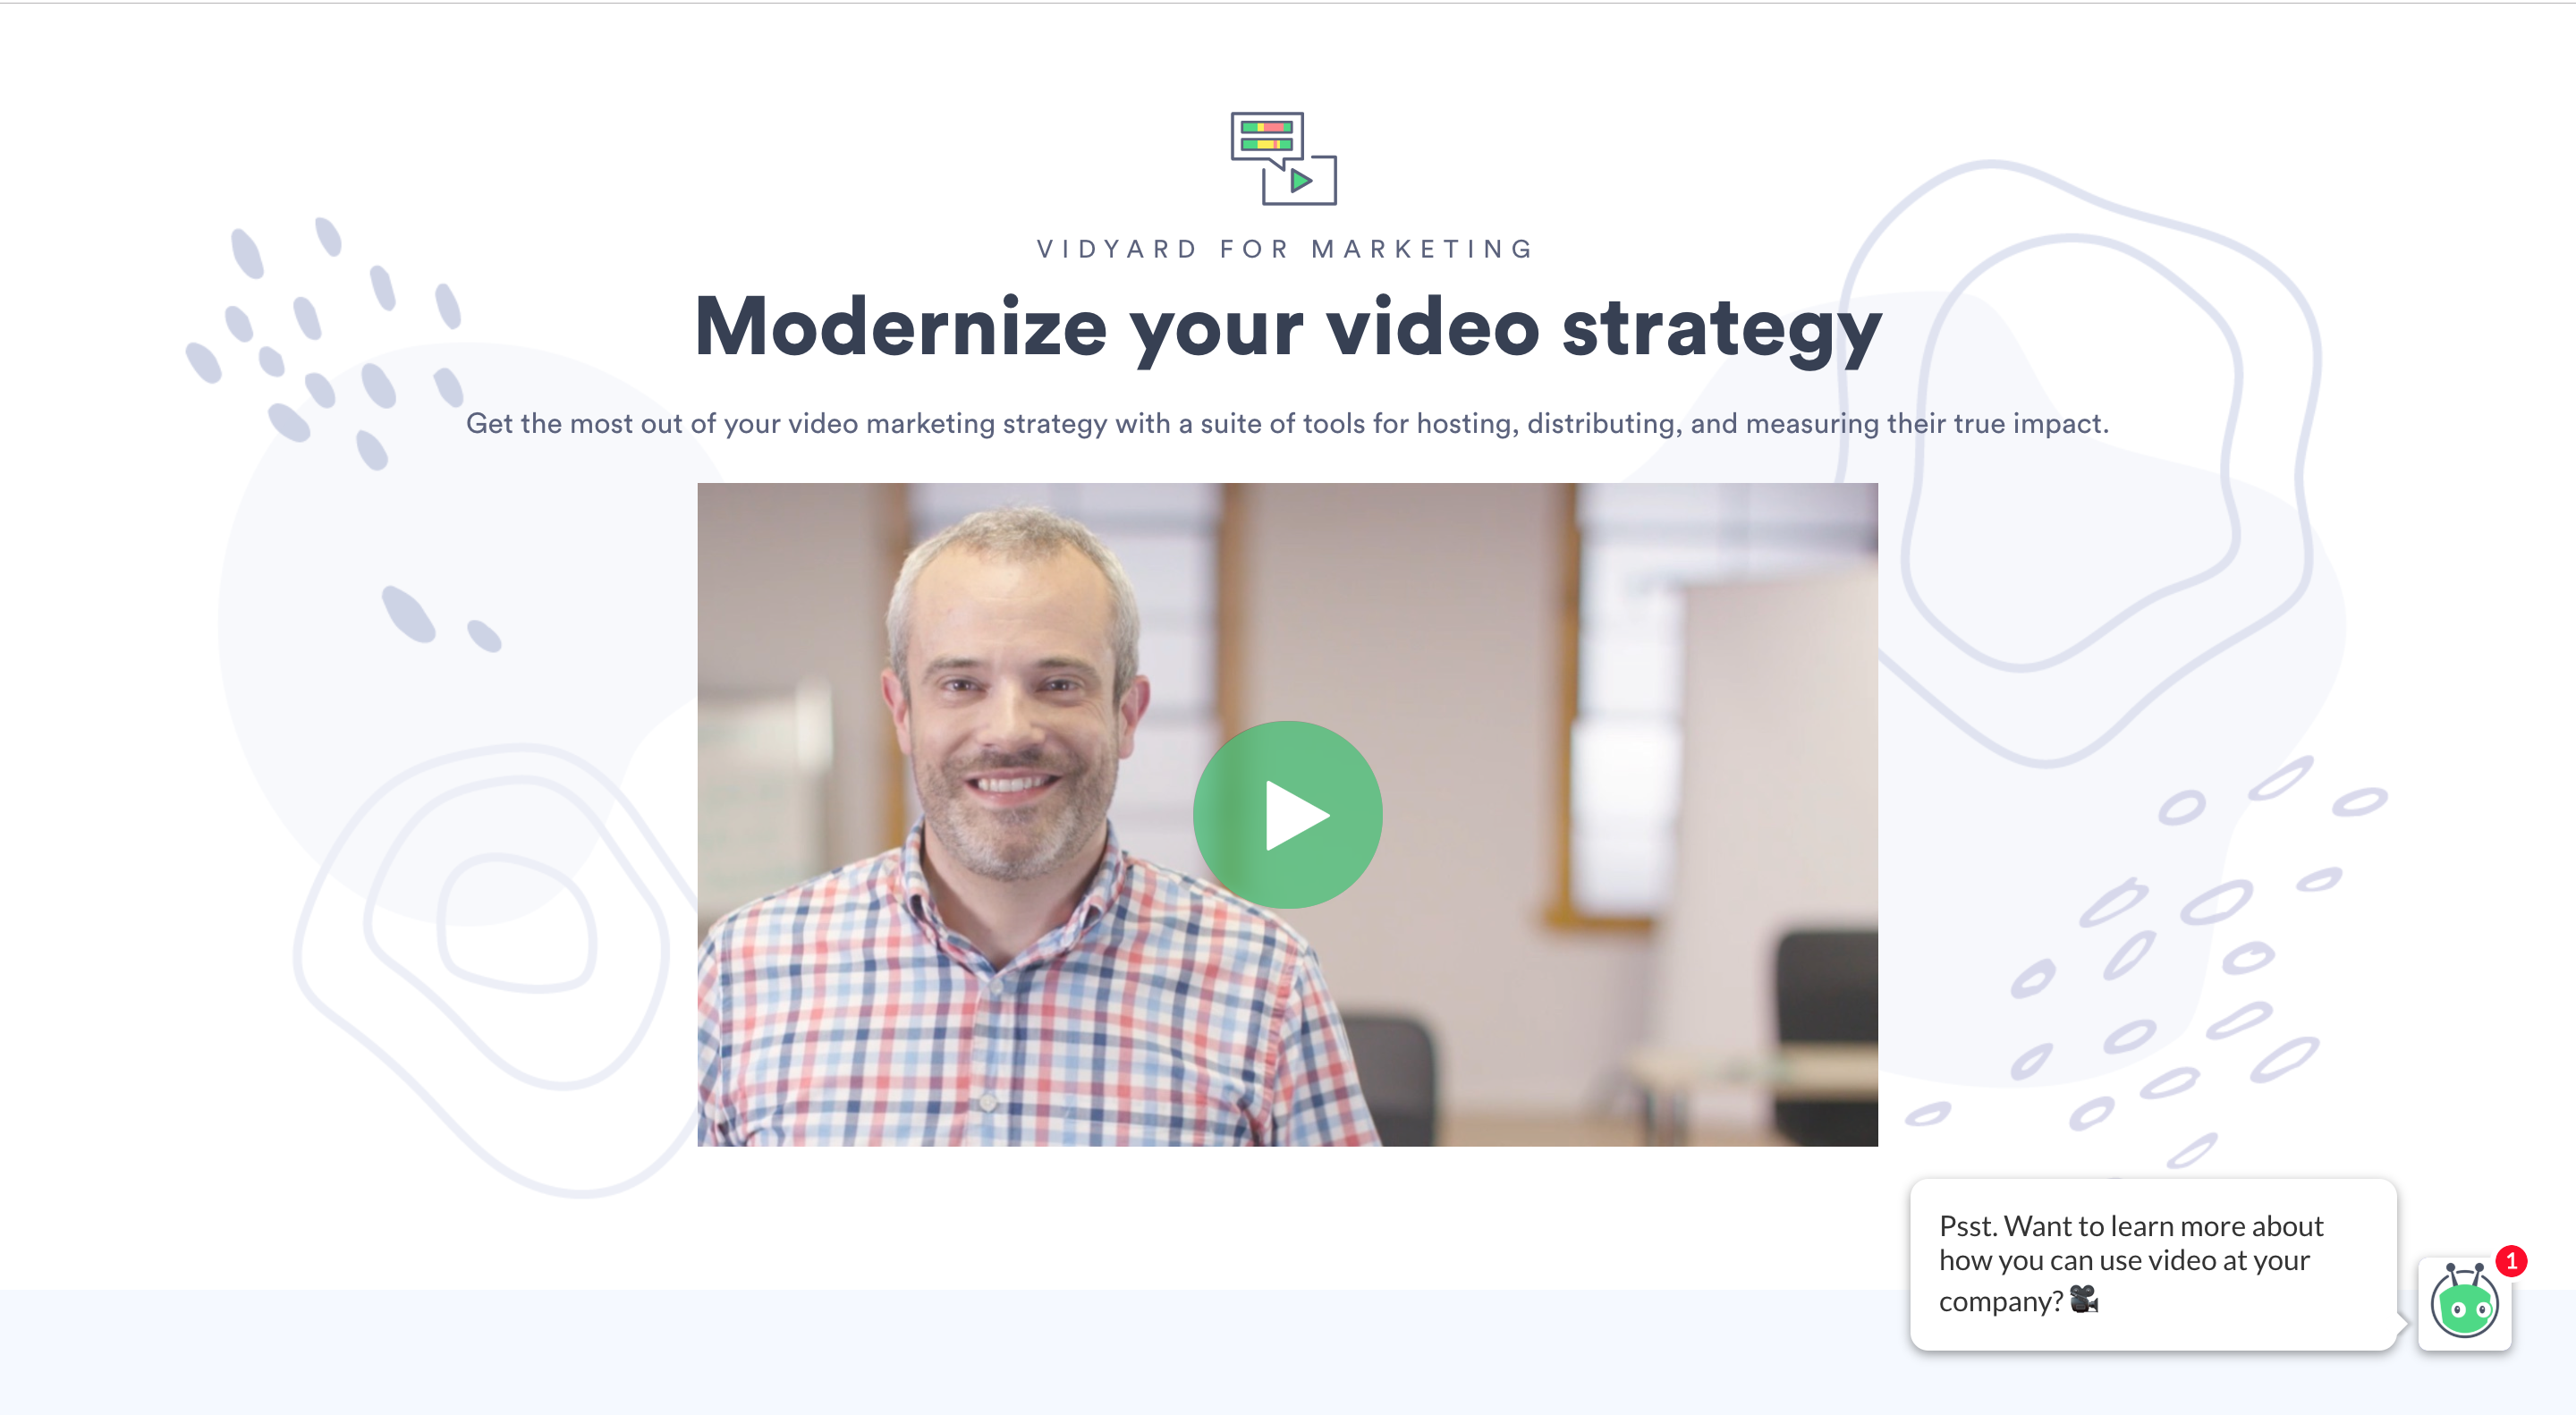 modernize_your_video_strategy_vidyard